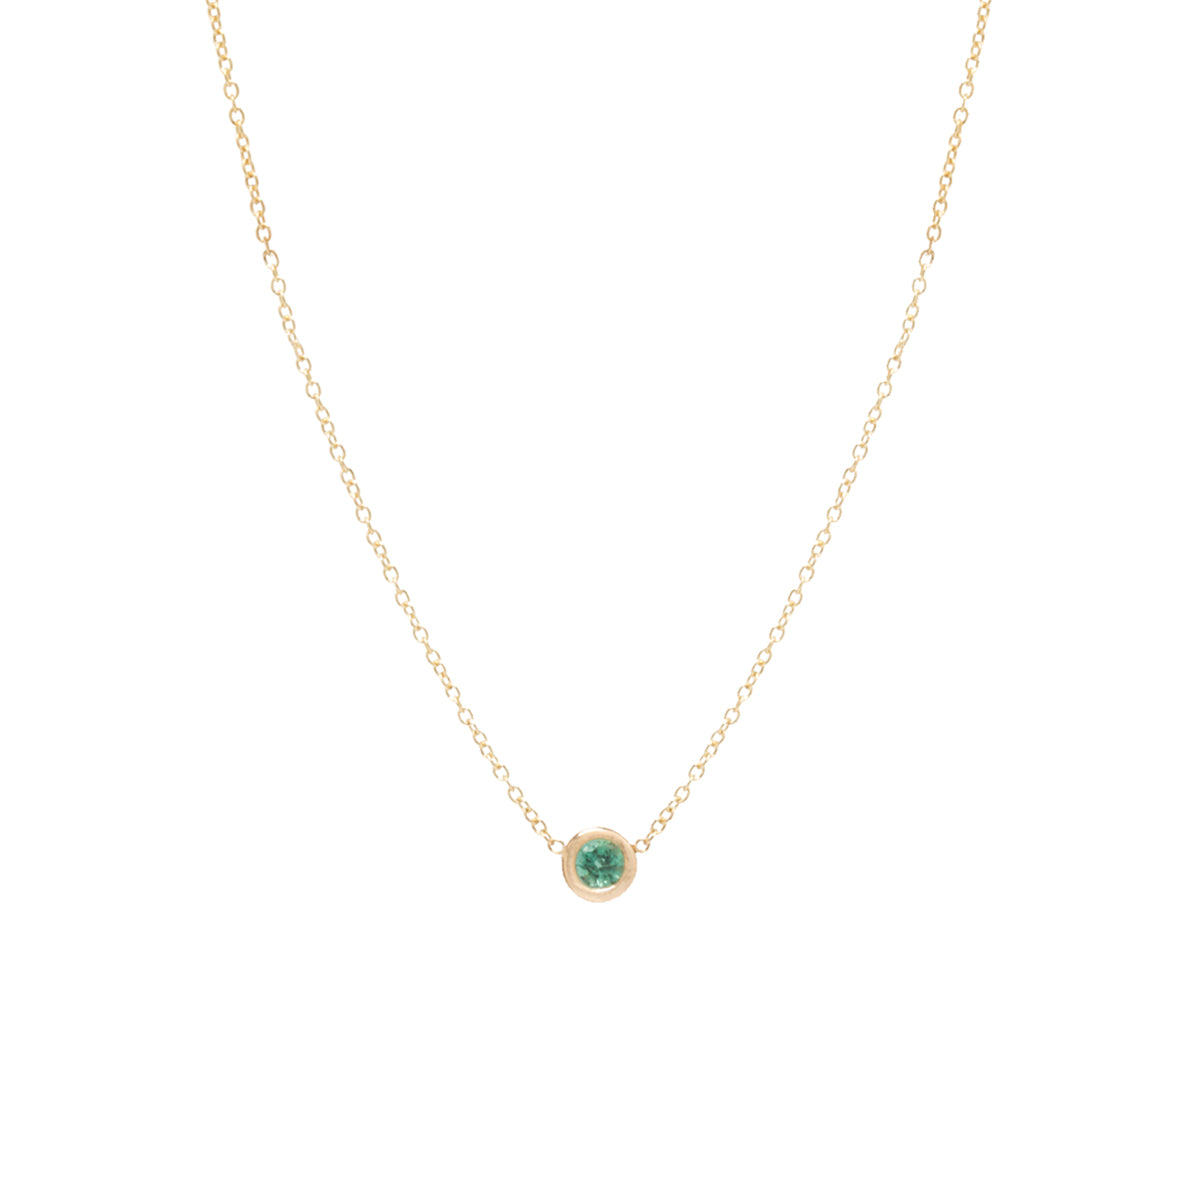 14k single emerald choker necklace